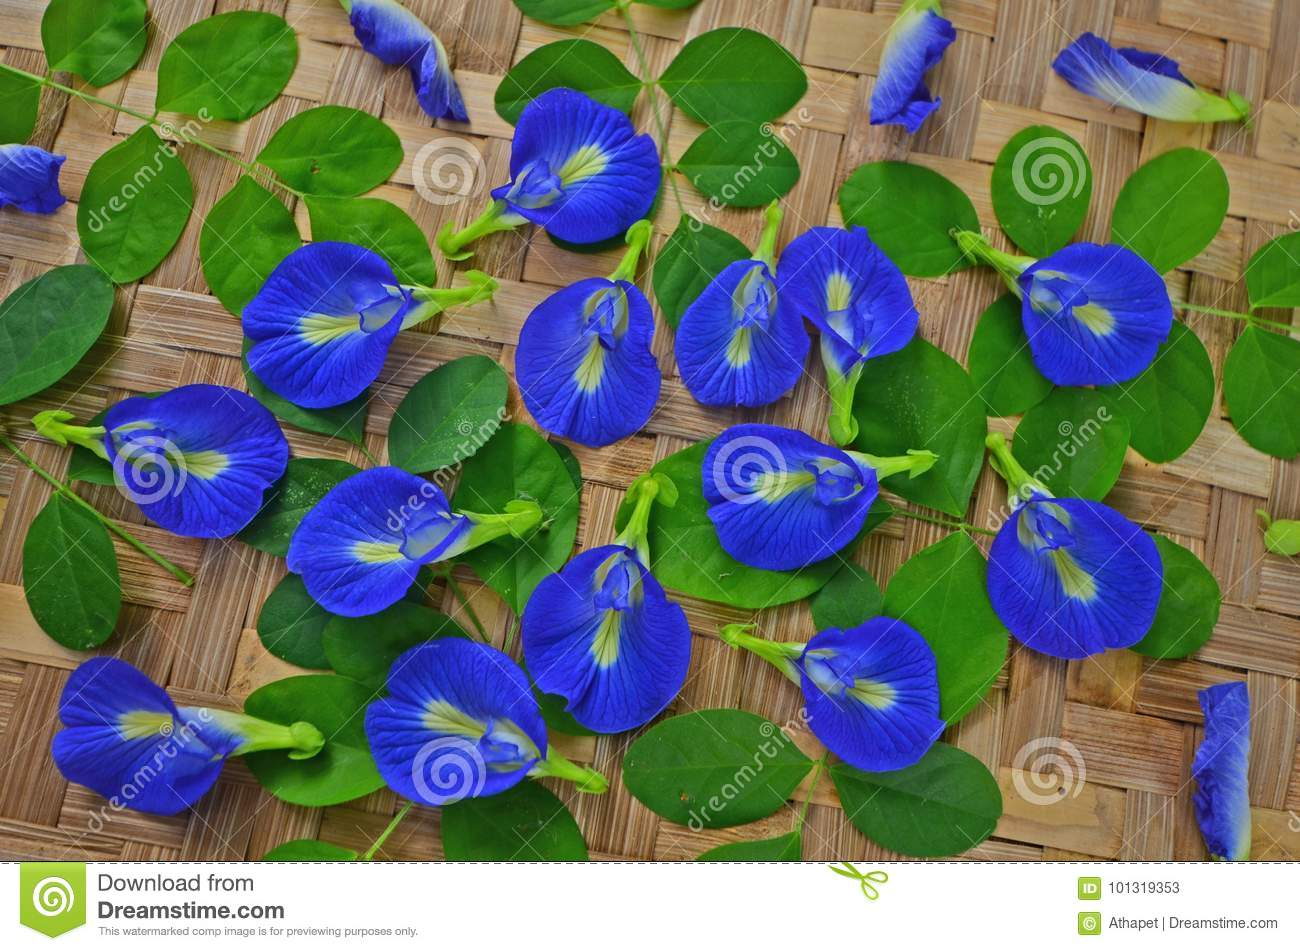 Blue Butterfly Vine Flowers With Green Leaves Stock Image Image Of